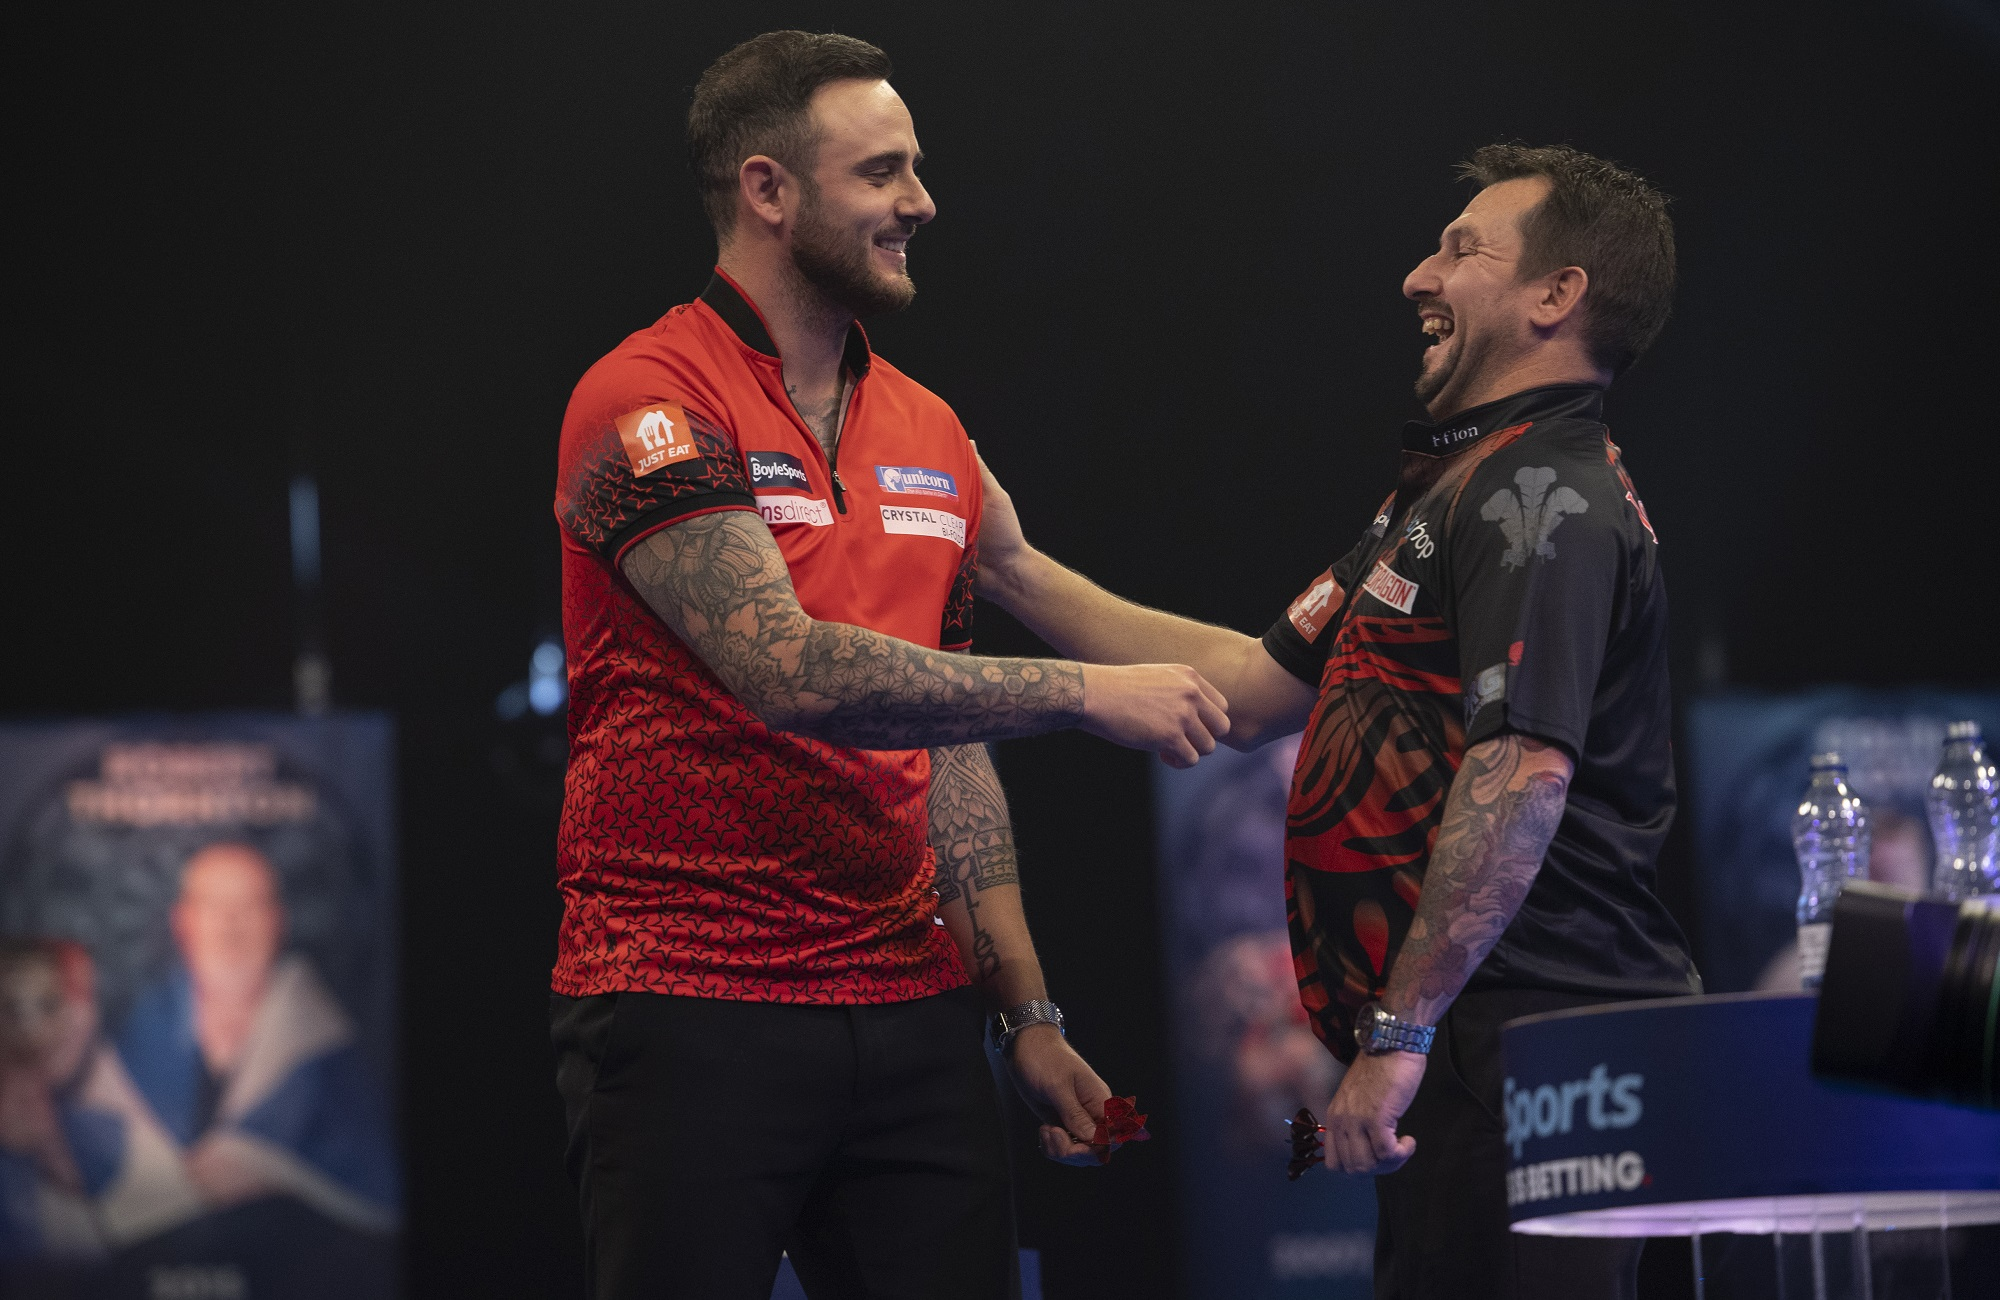 Cullen defeats Clayton to win day one of PDC Super Series